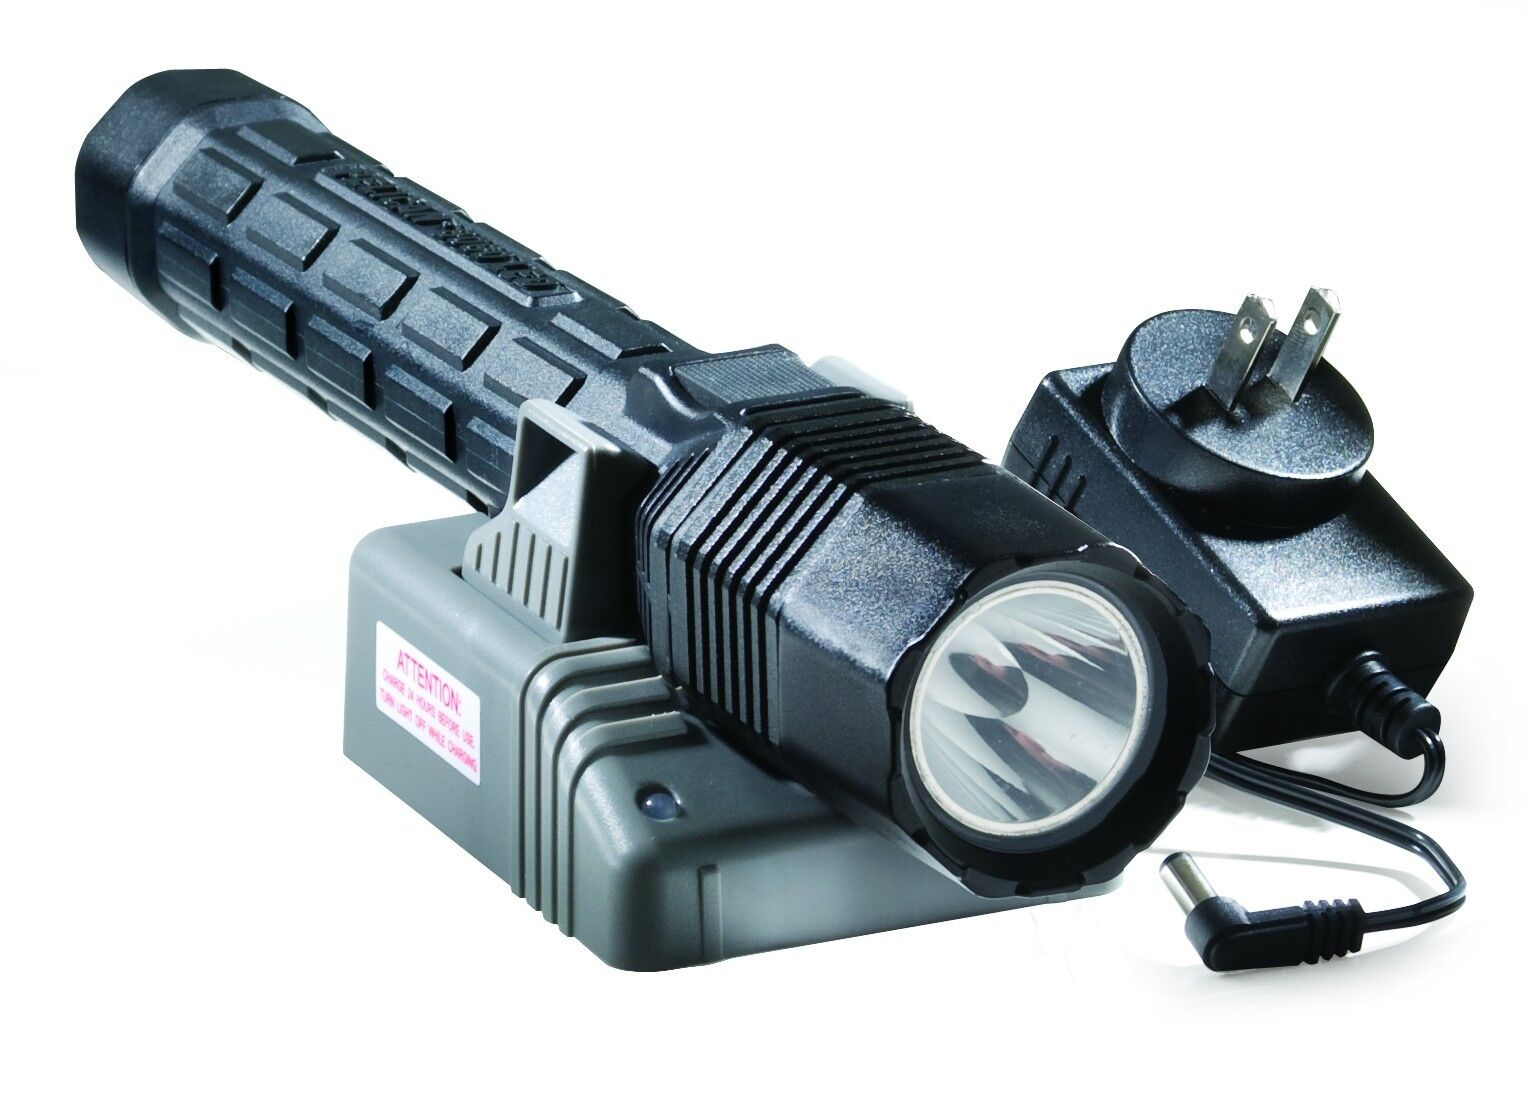 High 803 Lumens New 2016 - 3 settings.   Pelican 8060 Flashlight with charger.  order online